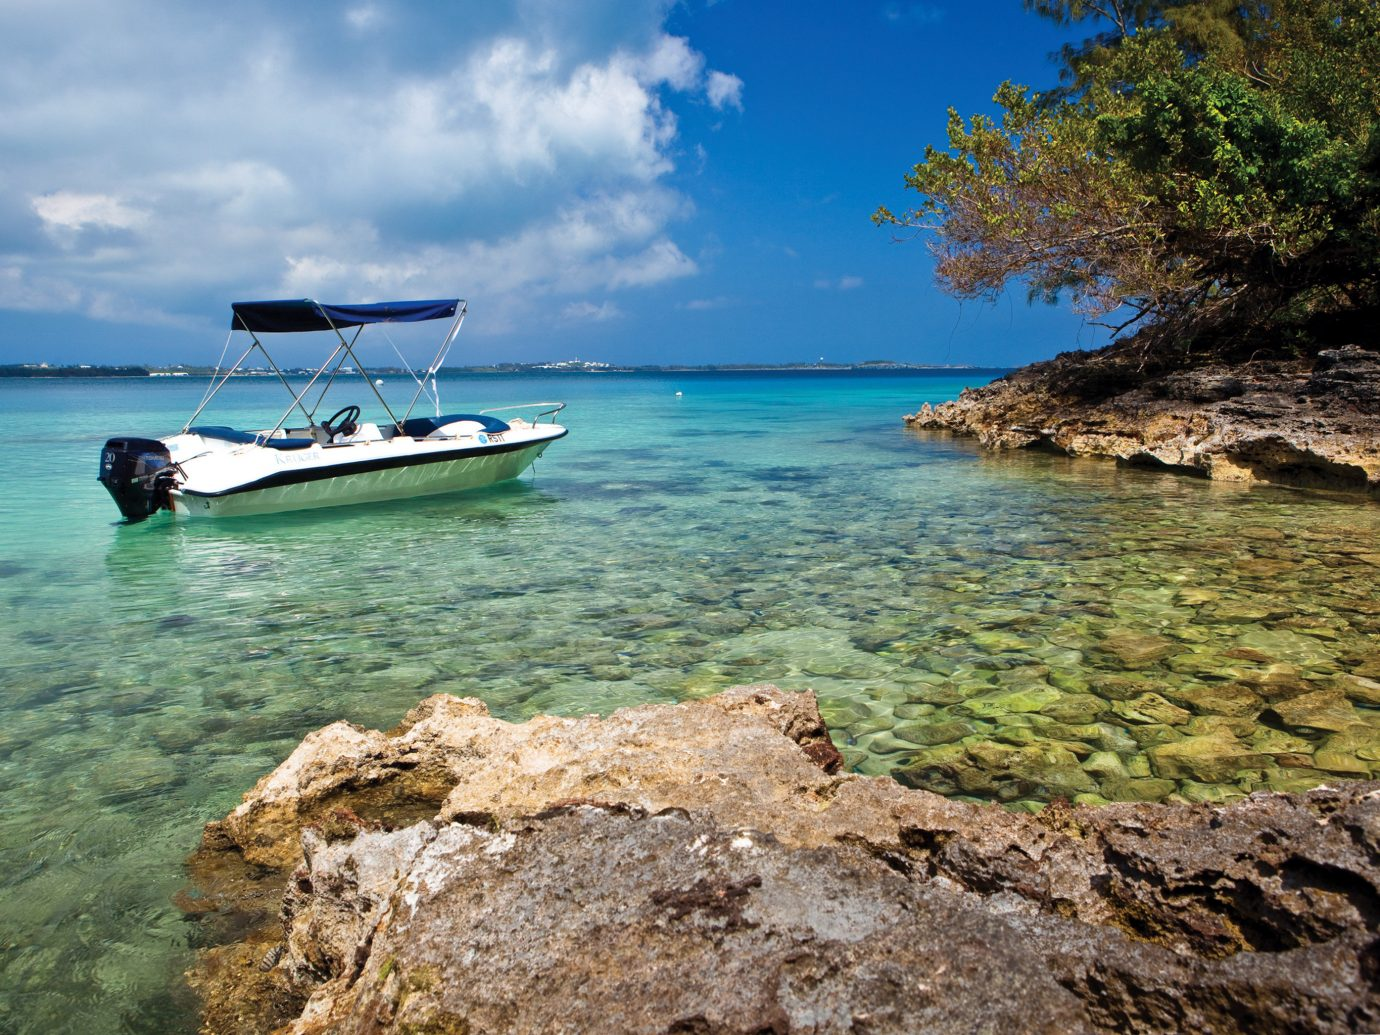 Beach Beachfront Boat Hotels Island Nature Outdoor Activities Outdoors Trip Ideas Tropical Waterfront water outdoor sky rock shore rocky Sea Coast landform geographical feature Ocean bay vacation cove vehicle cape islet tropics terrain Lagoon boating day